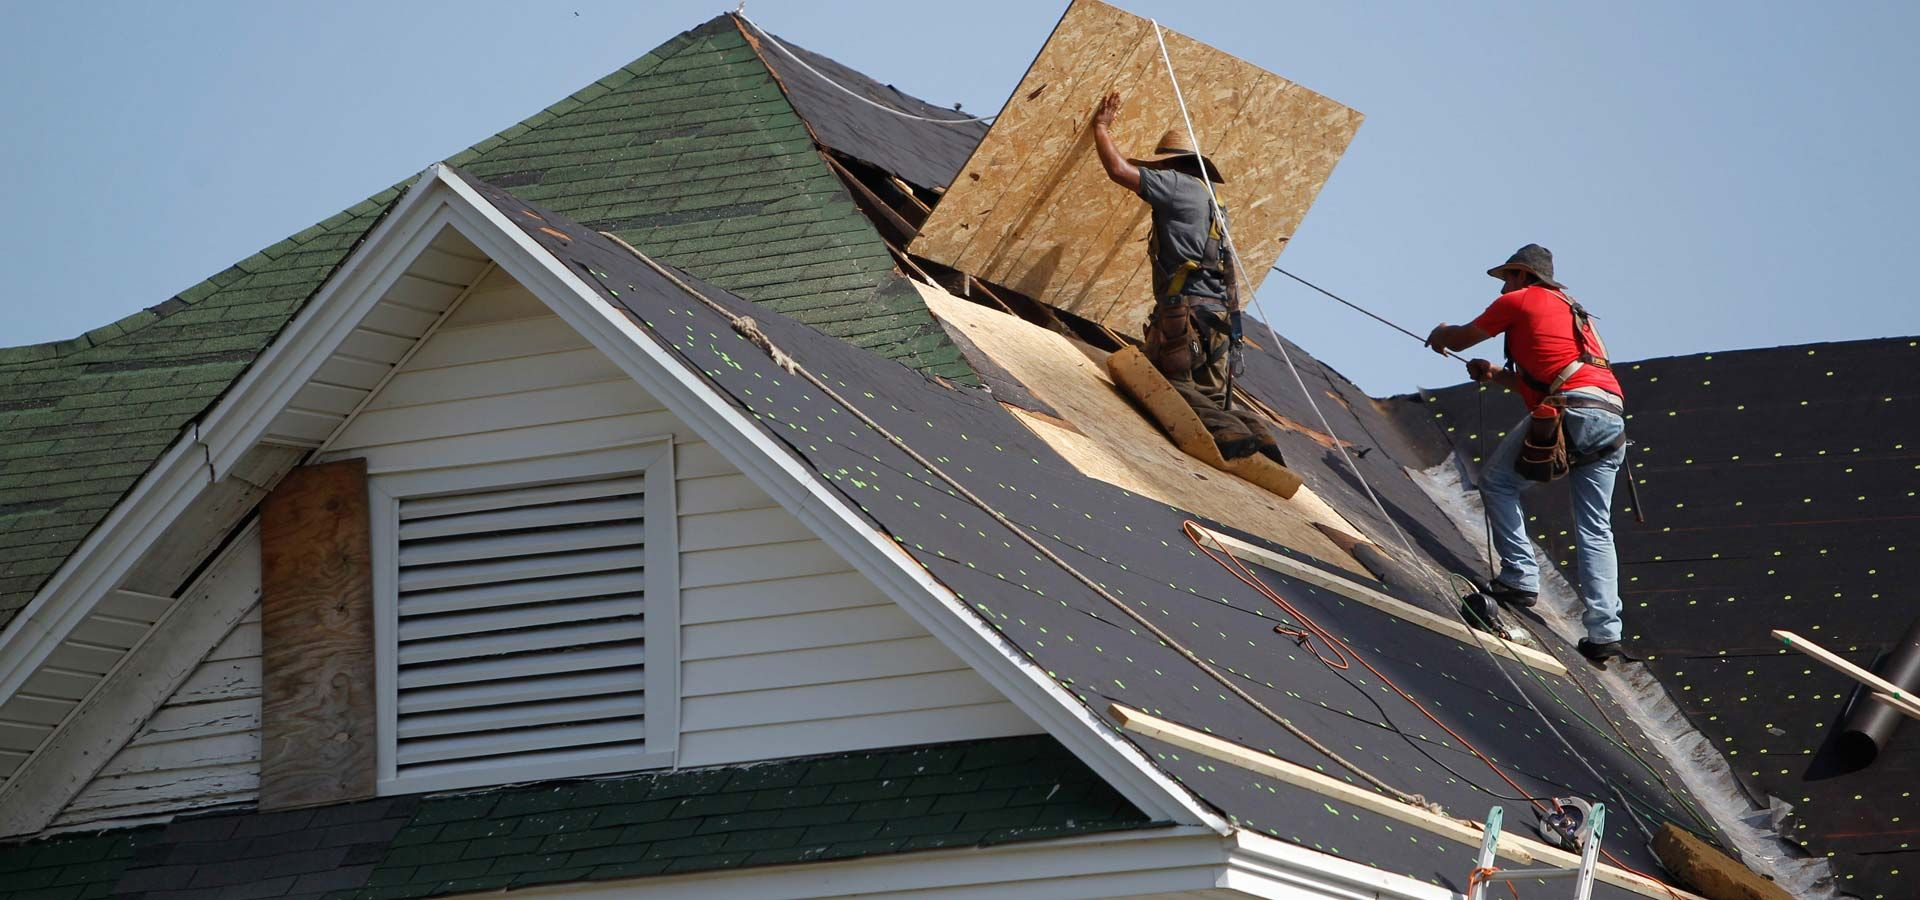 If you are searching for emergency roof repair then